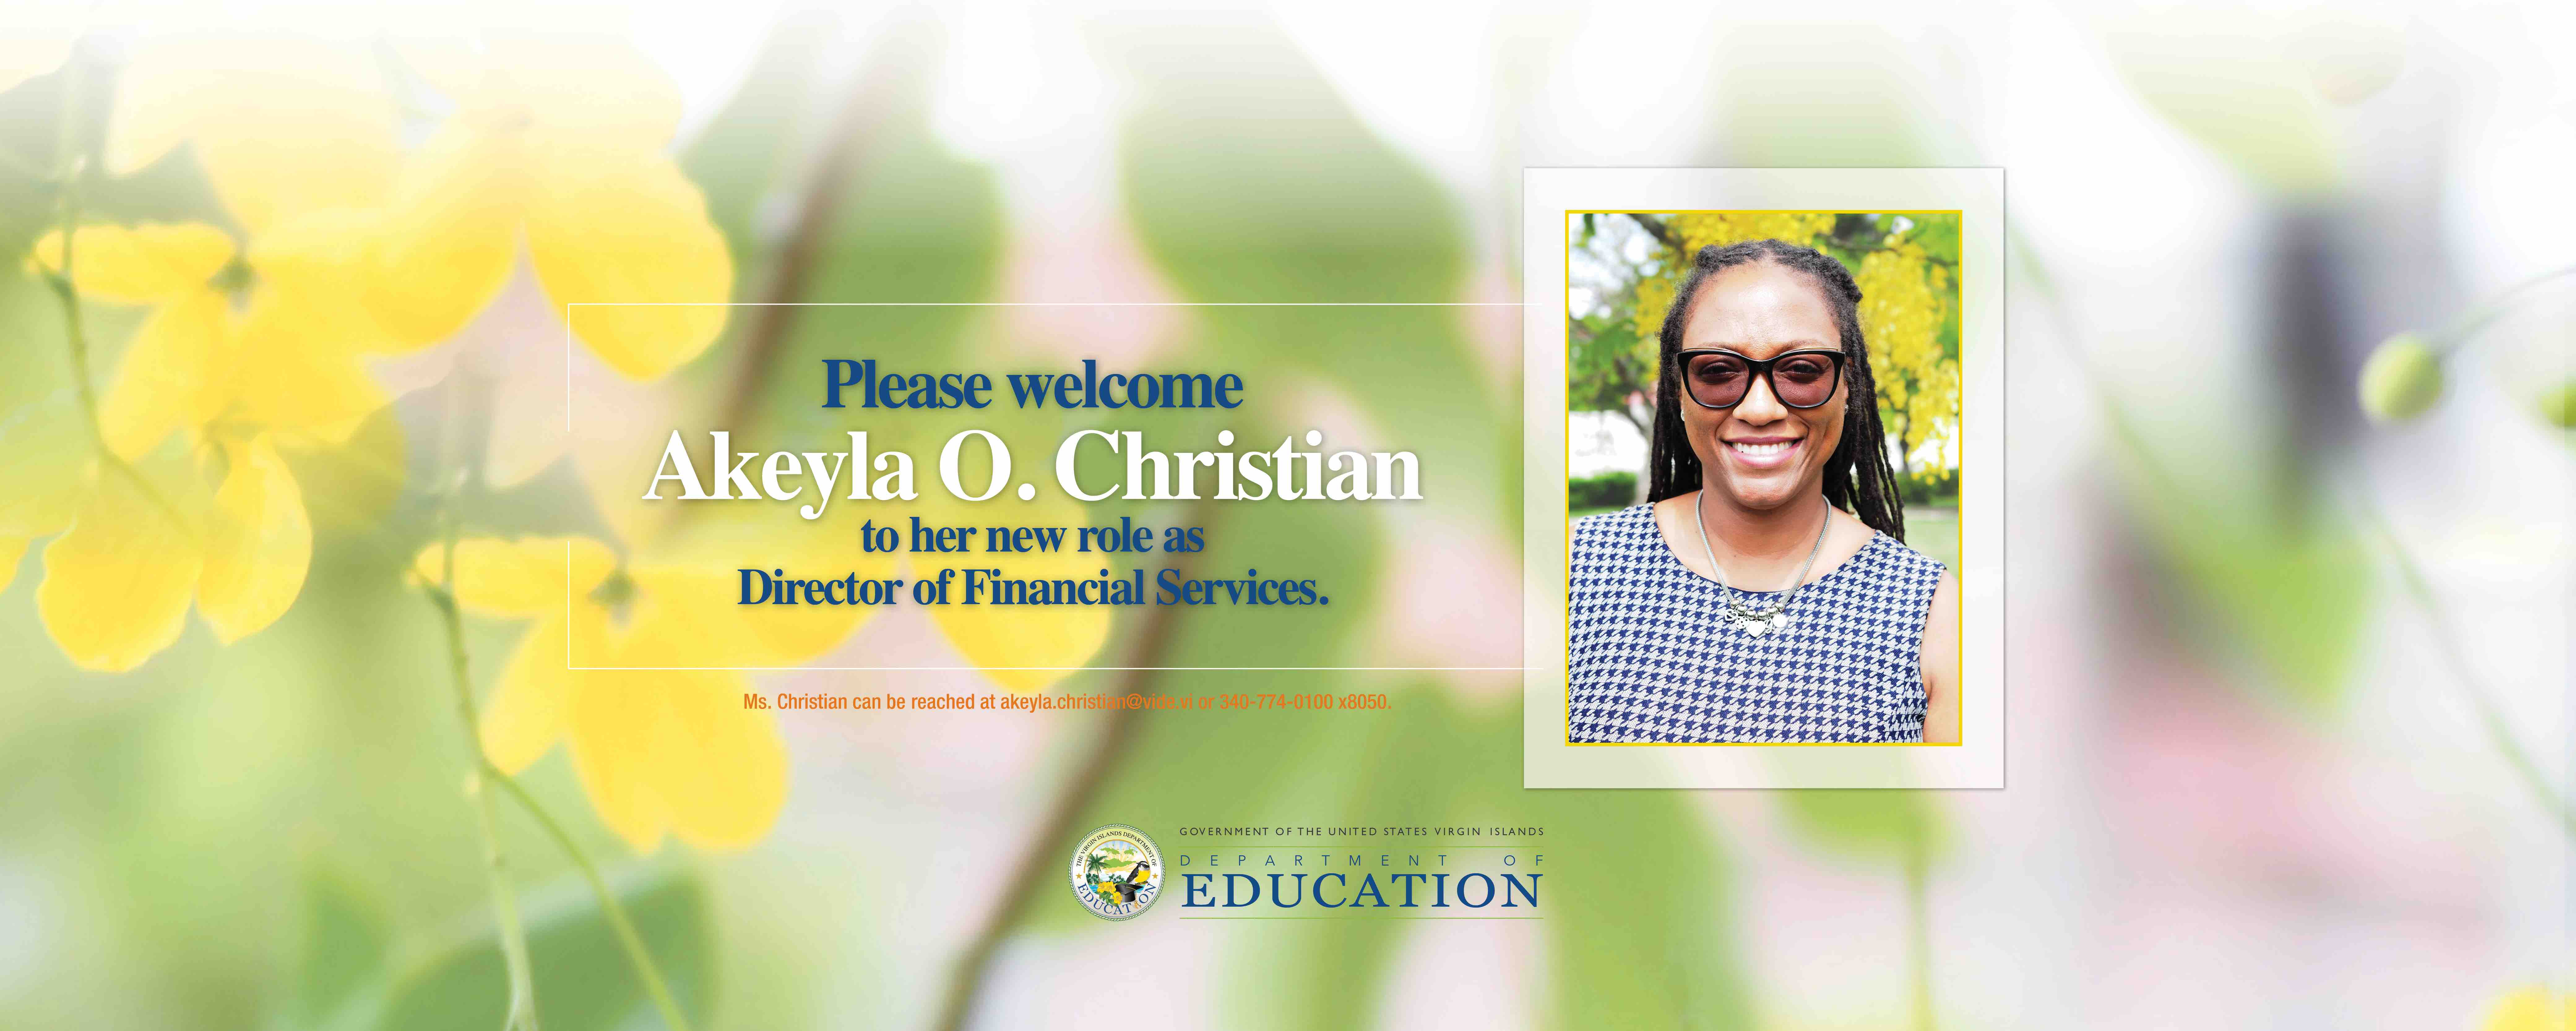 VIDE Welcomes Akeyla O. Christian to its team